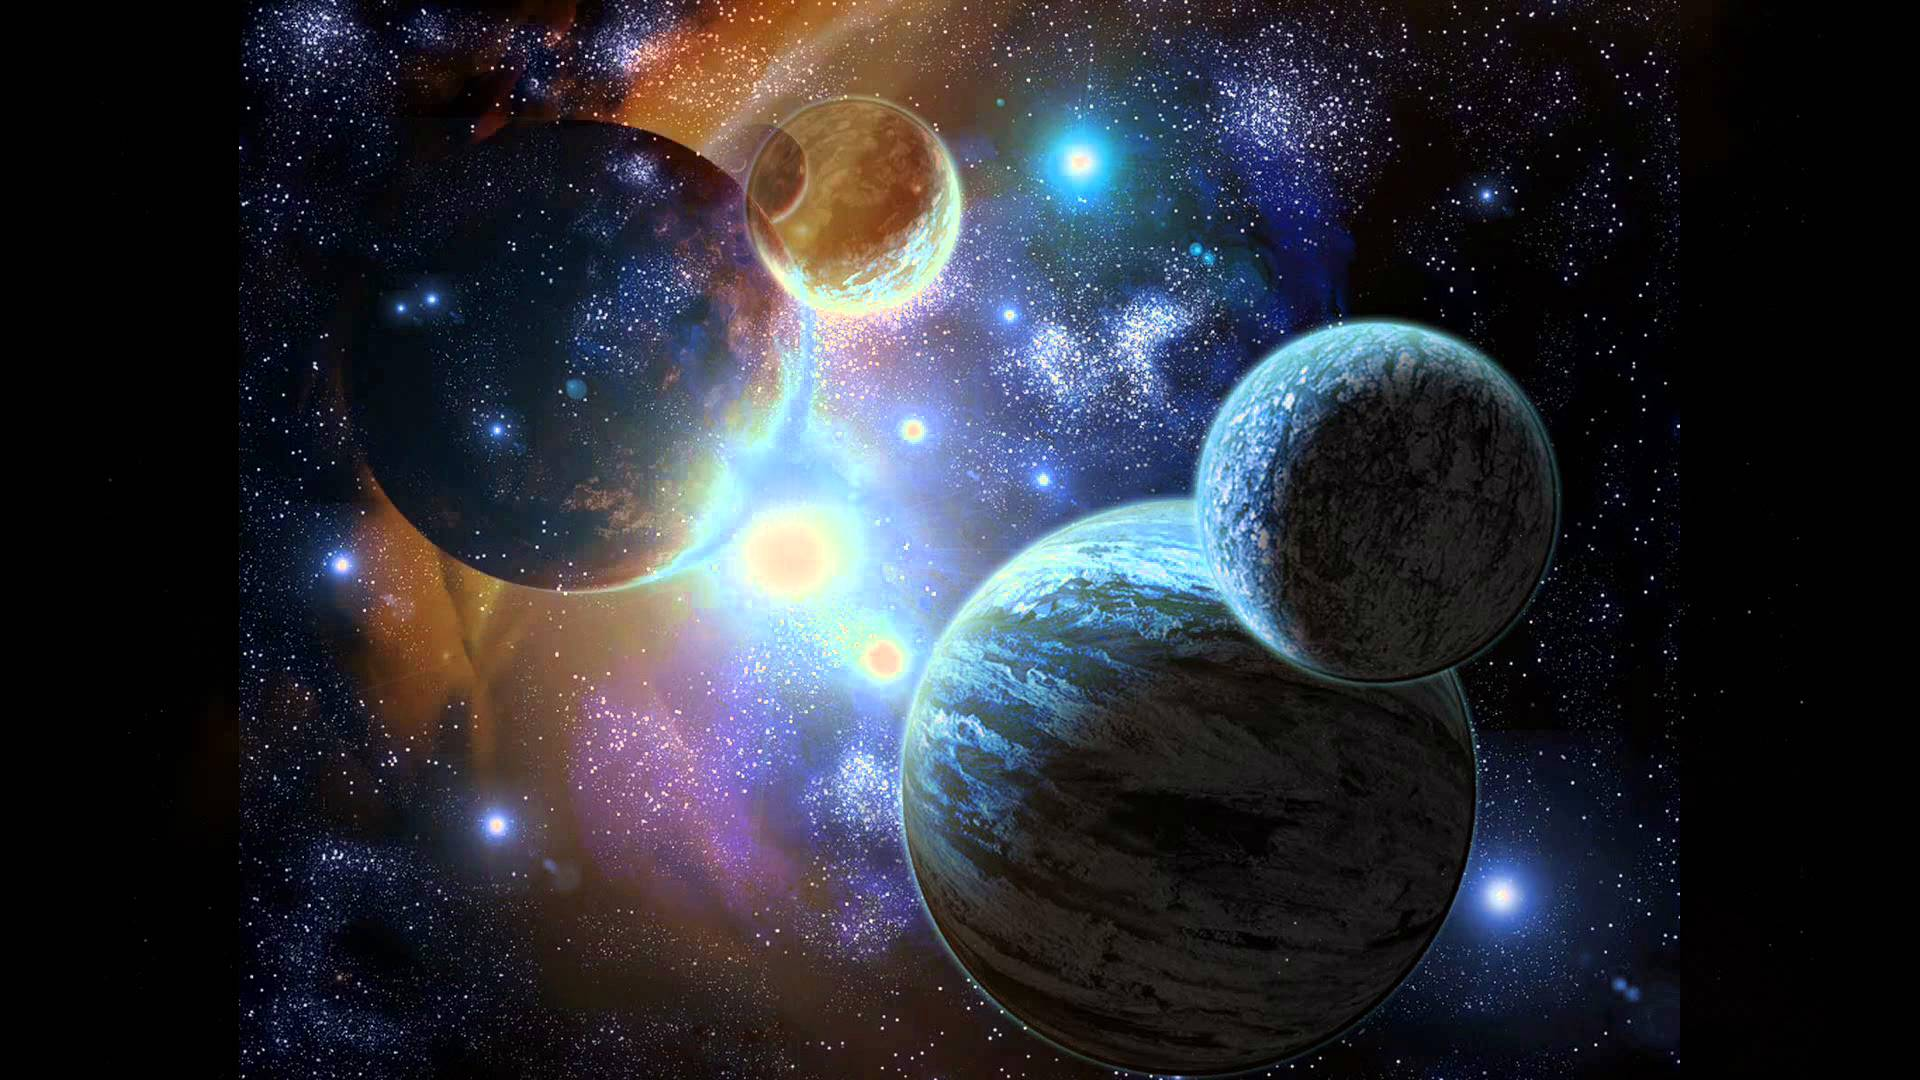 Epic Space Wallpapers - YouTube